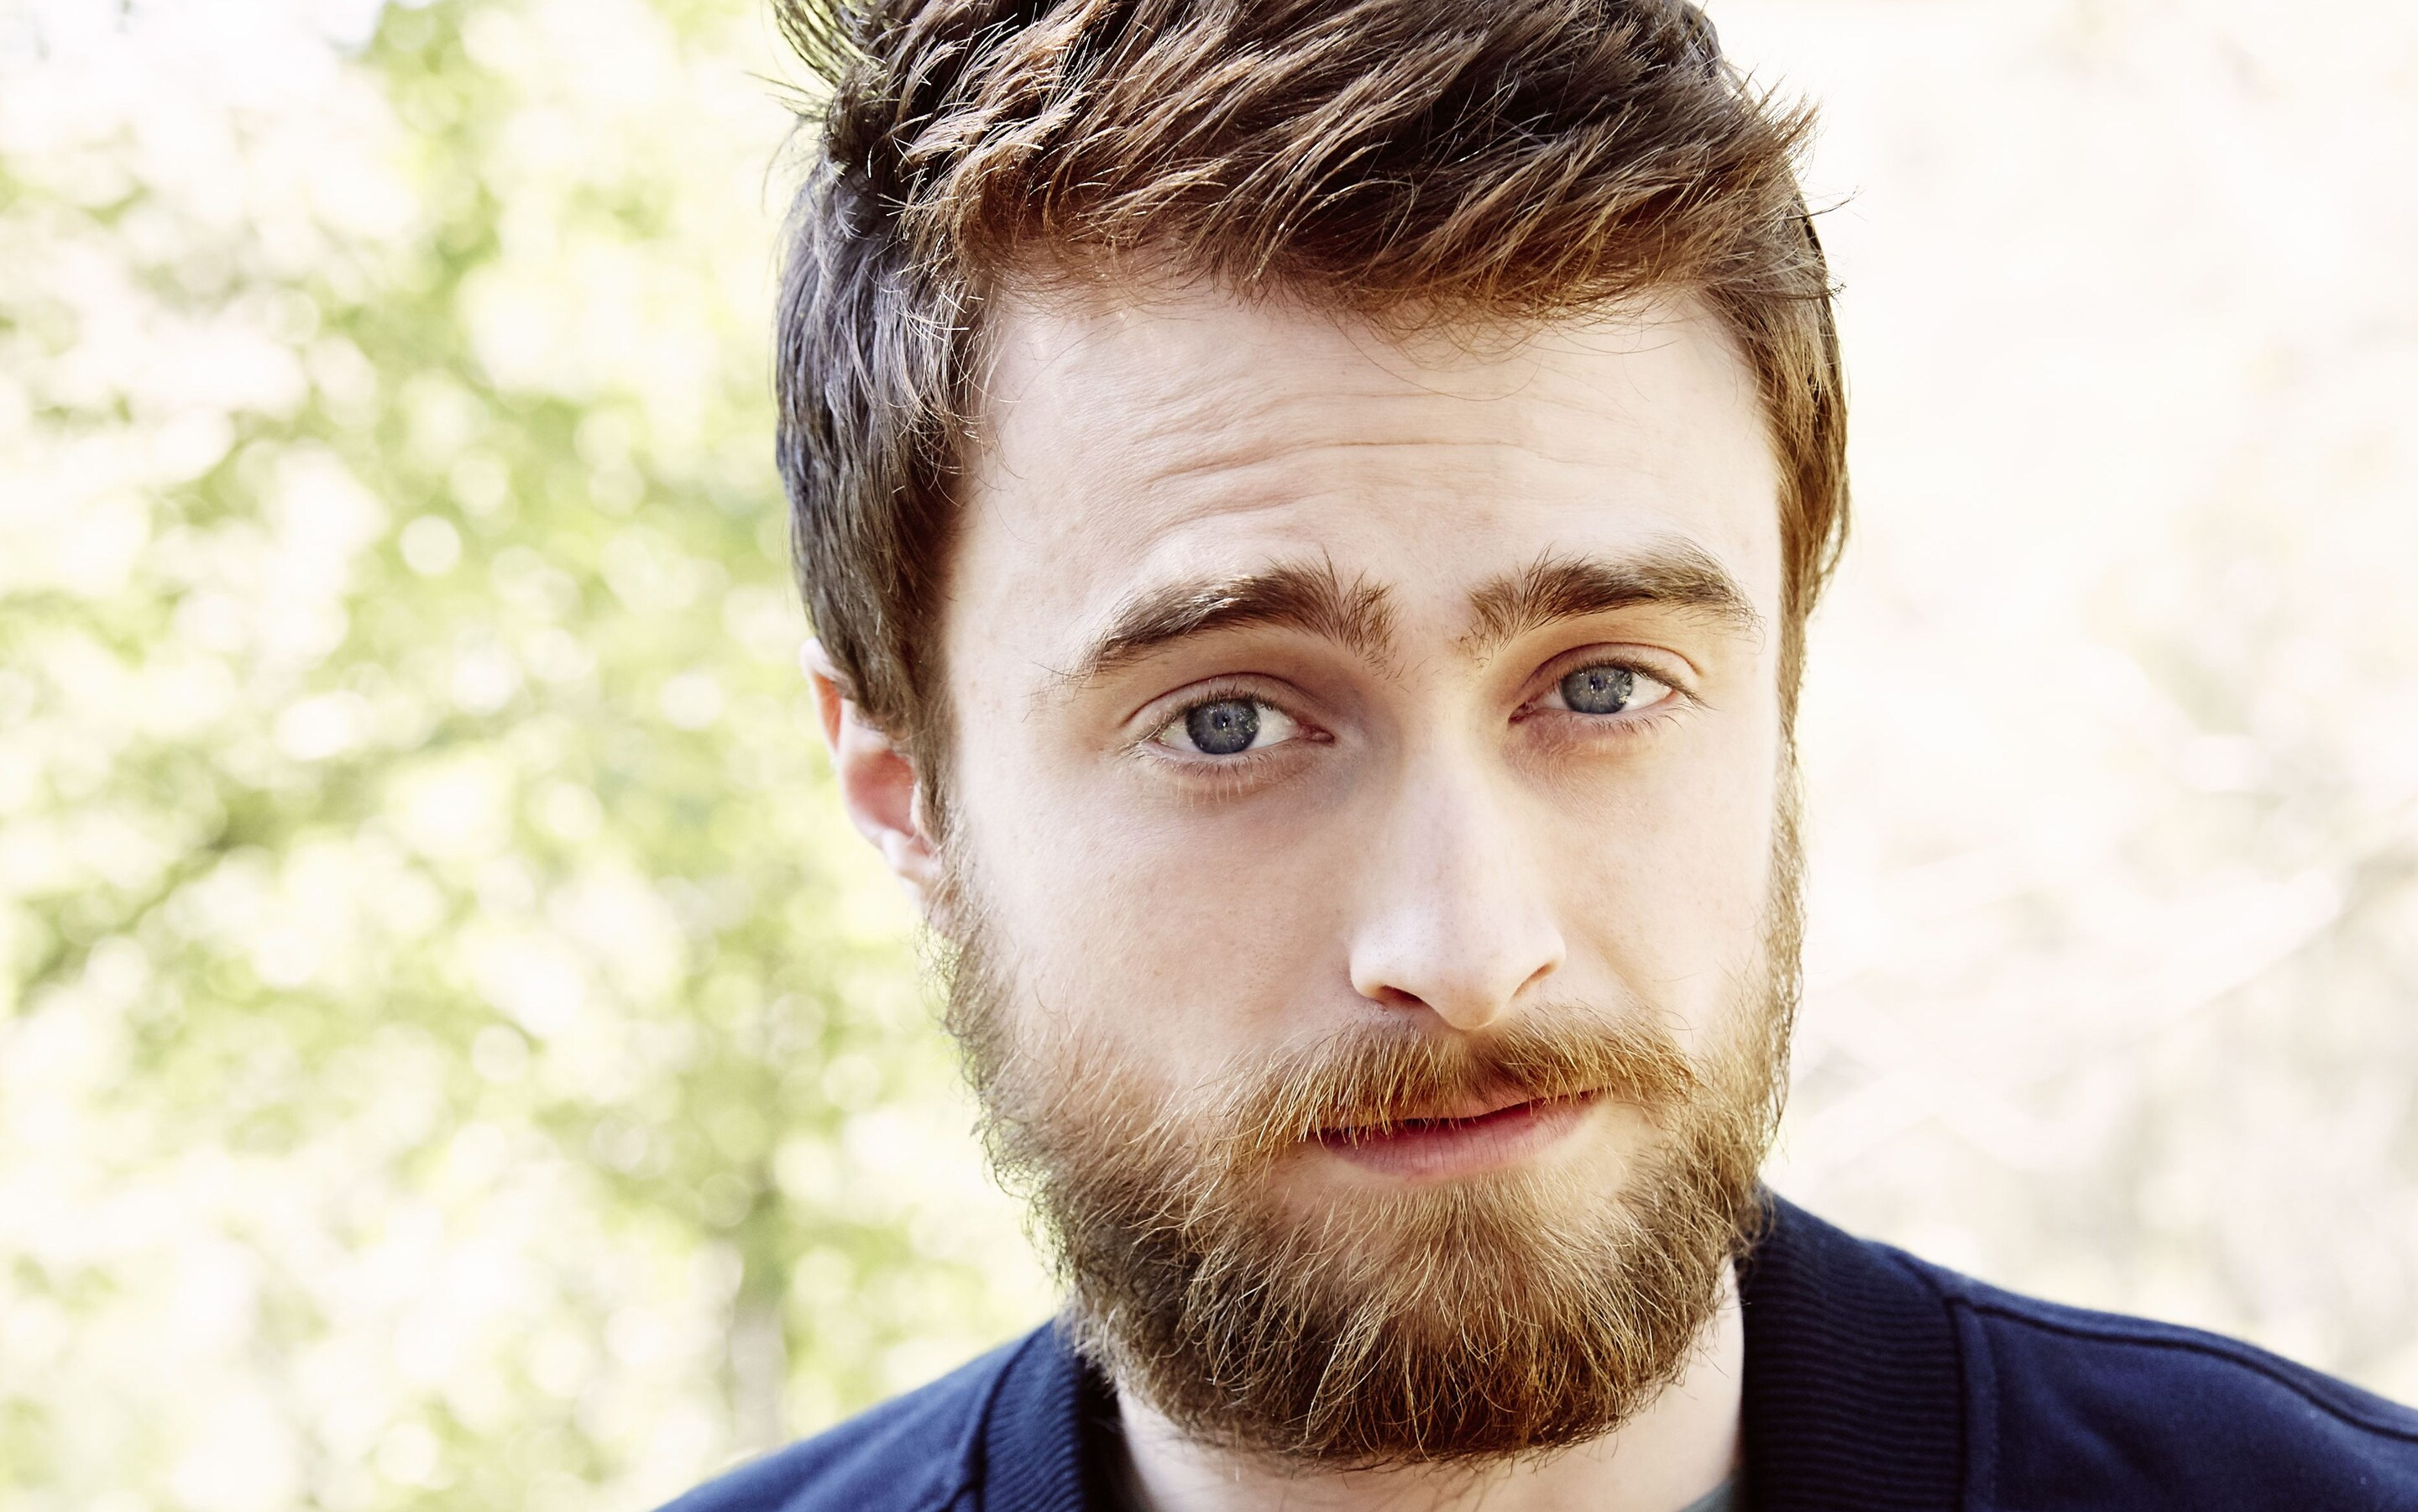 Almost nude pics of daniel radcliffe